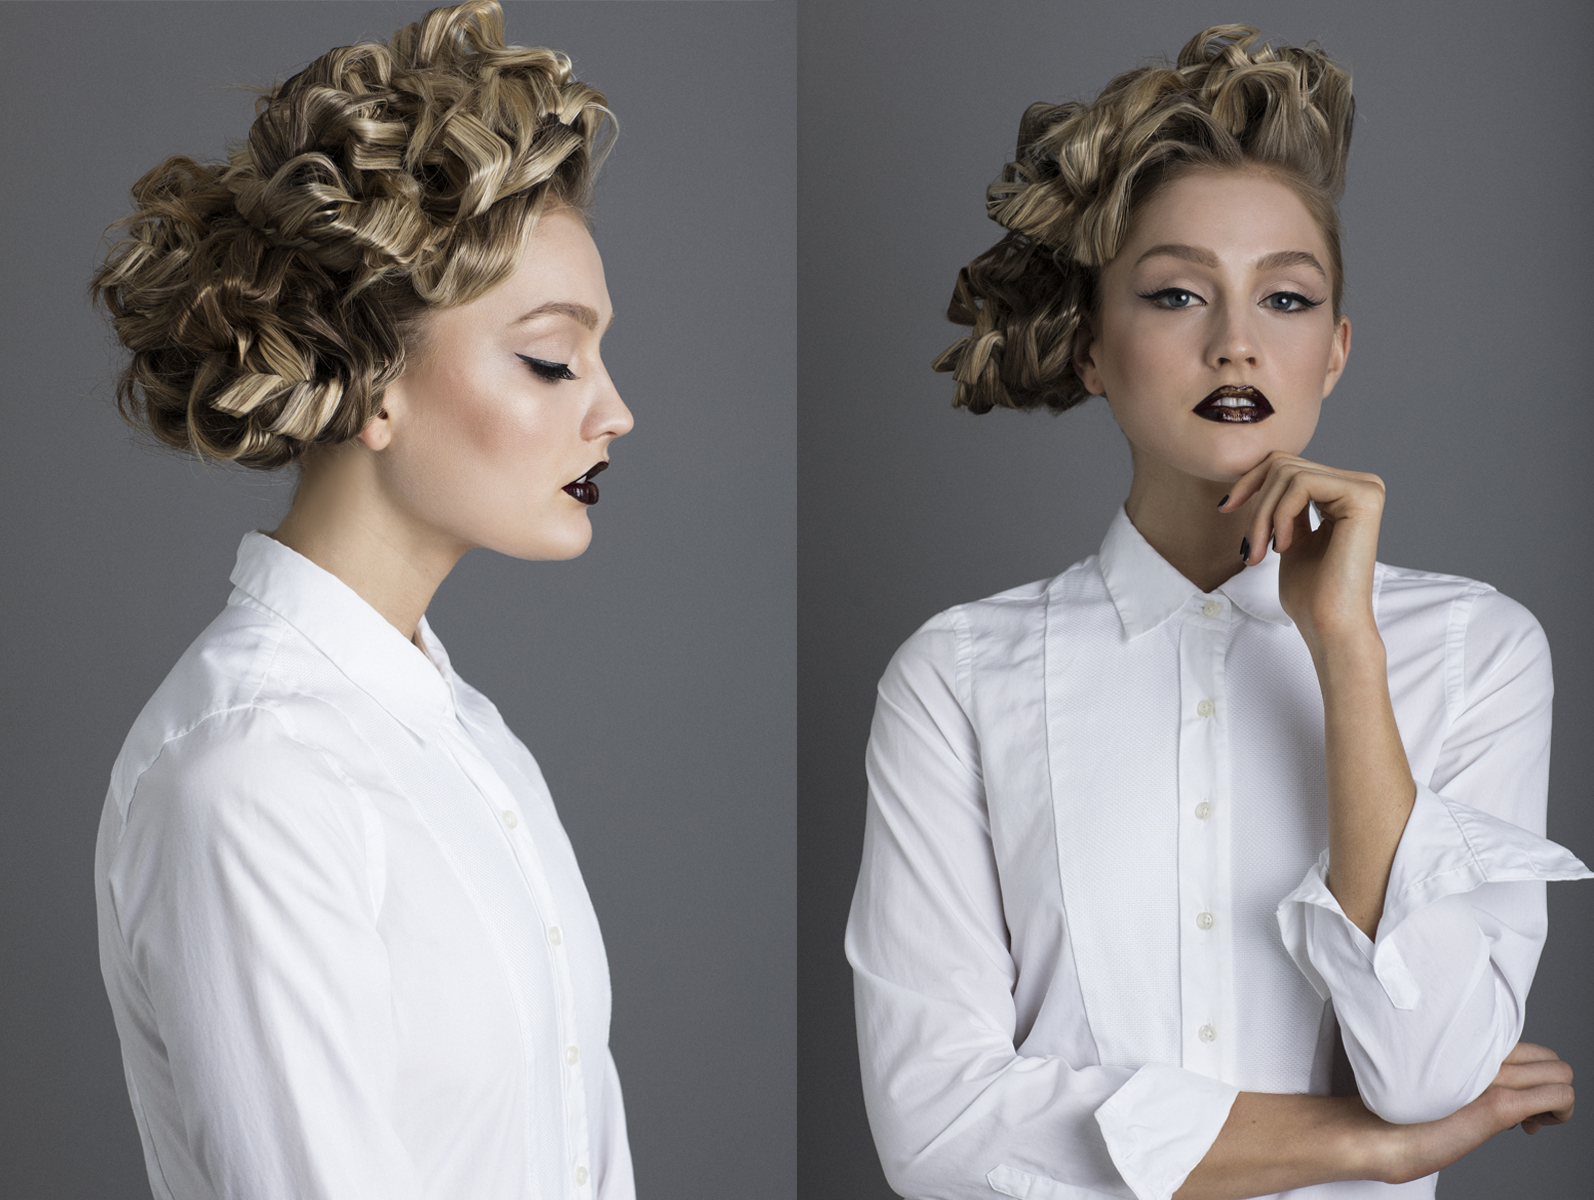 editorial high fashion hair